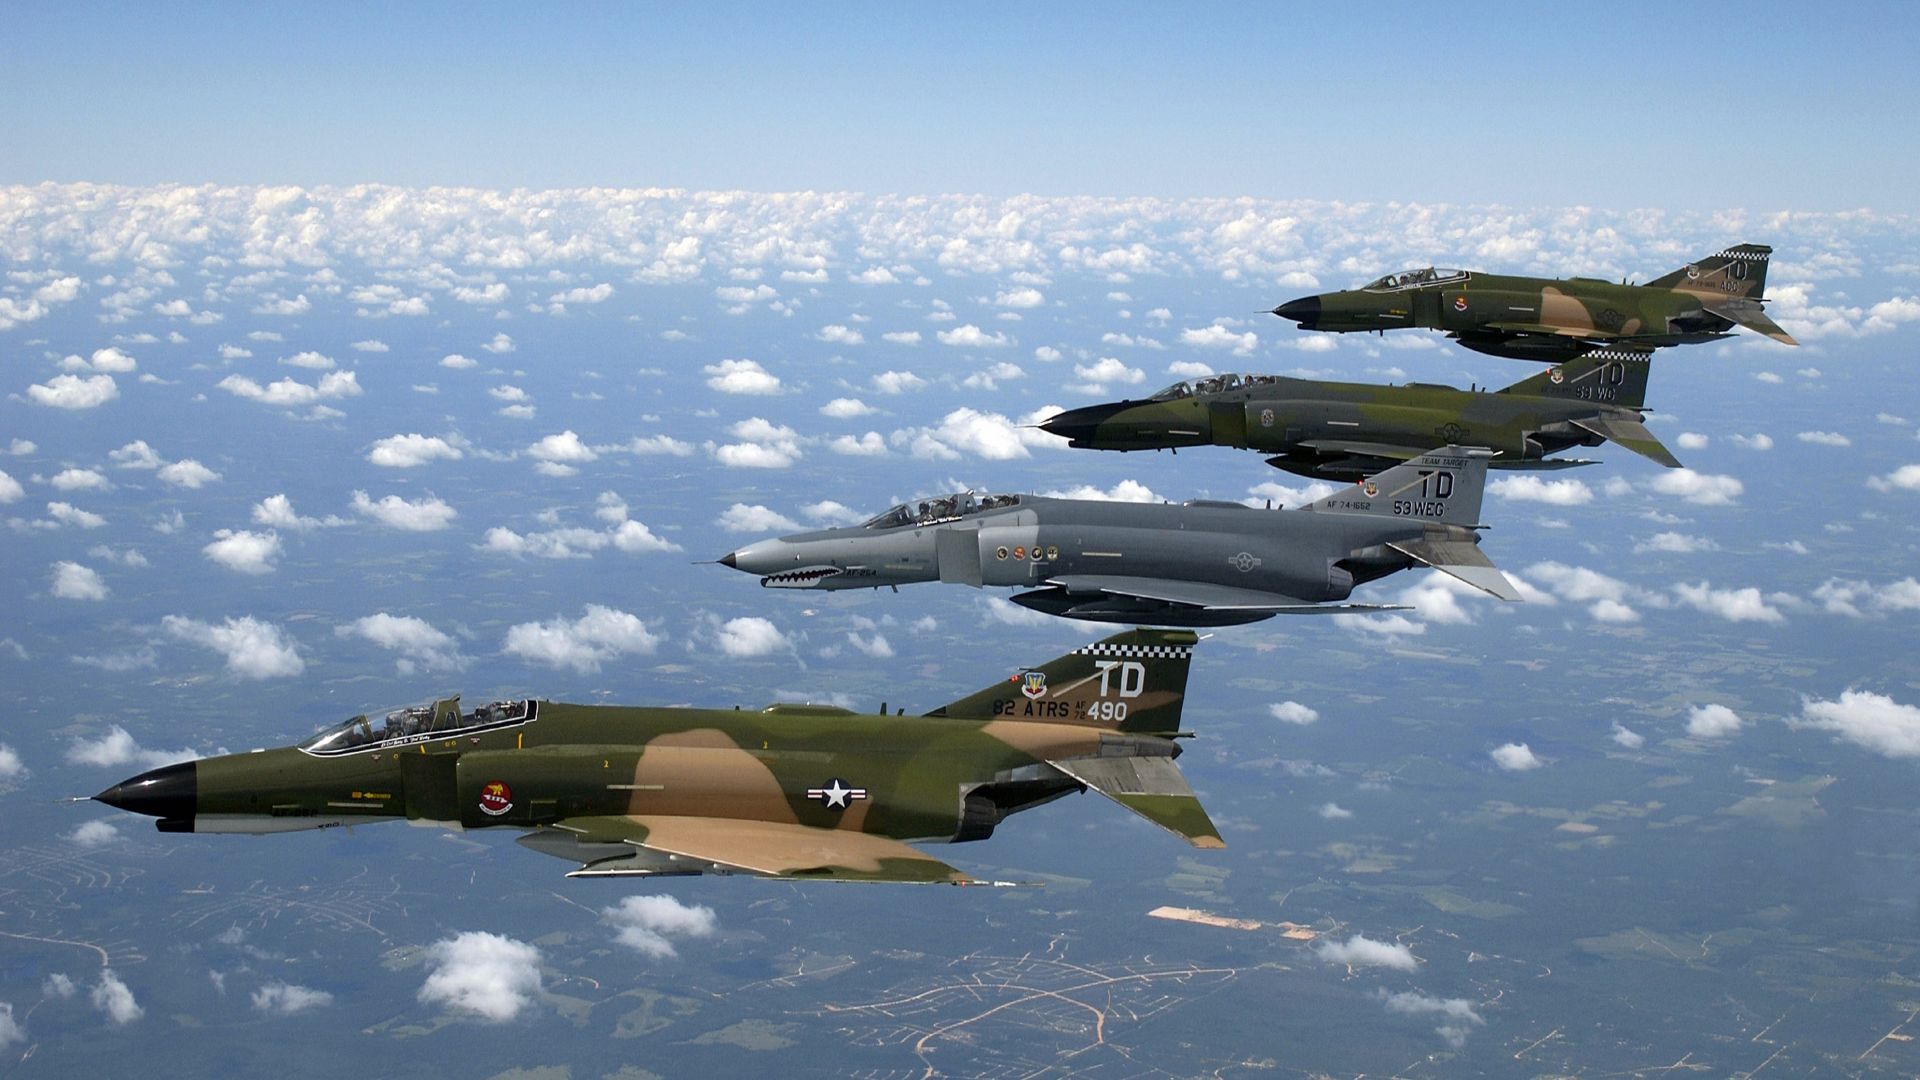 McDonnell Douglas F-4 Phantom II, F 4, fighter-bomber, Phantom 2, US Air Force, fighter (horizontal)